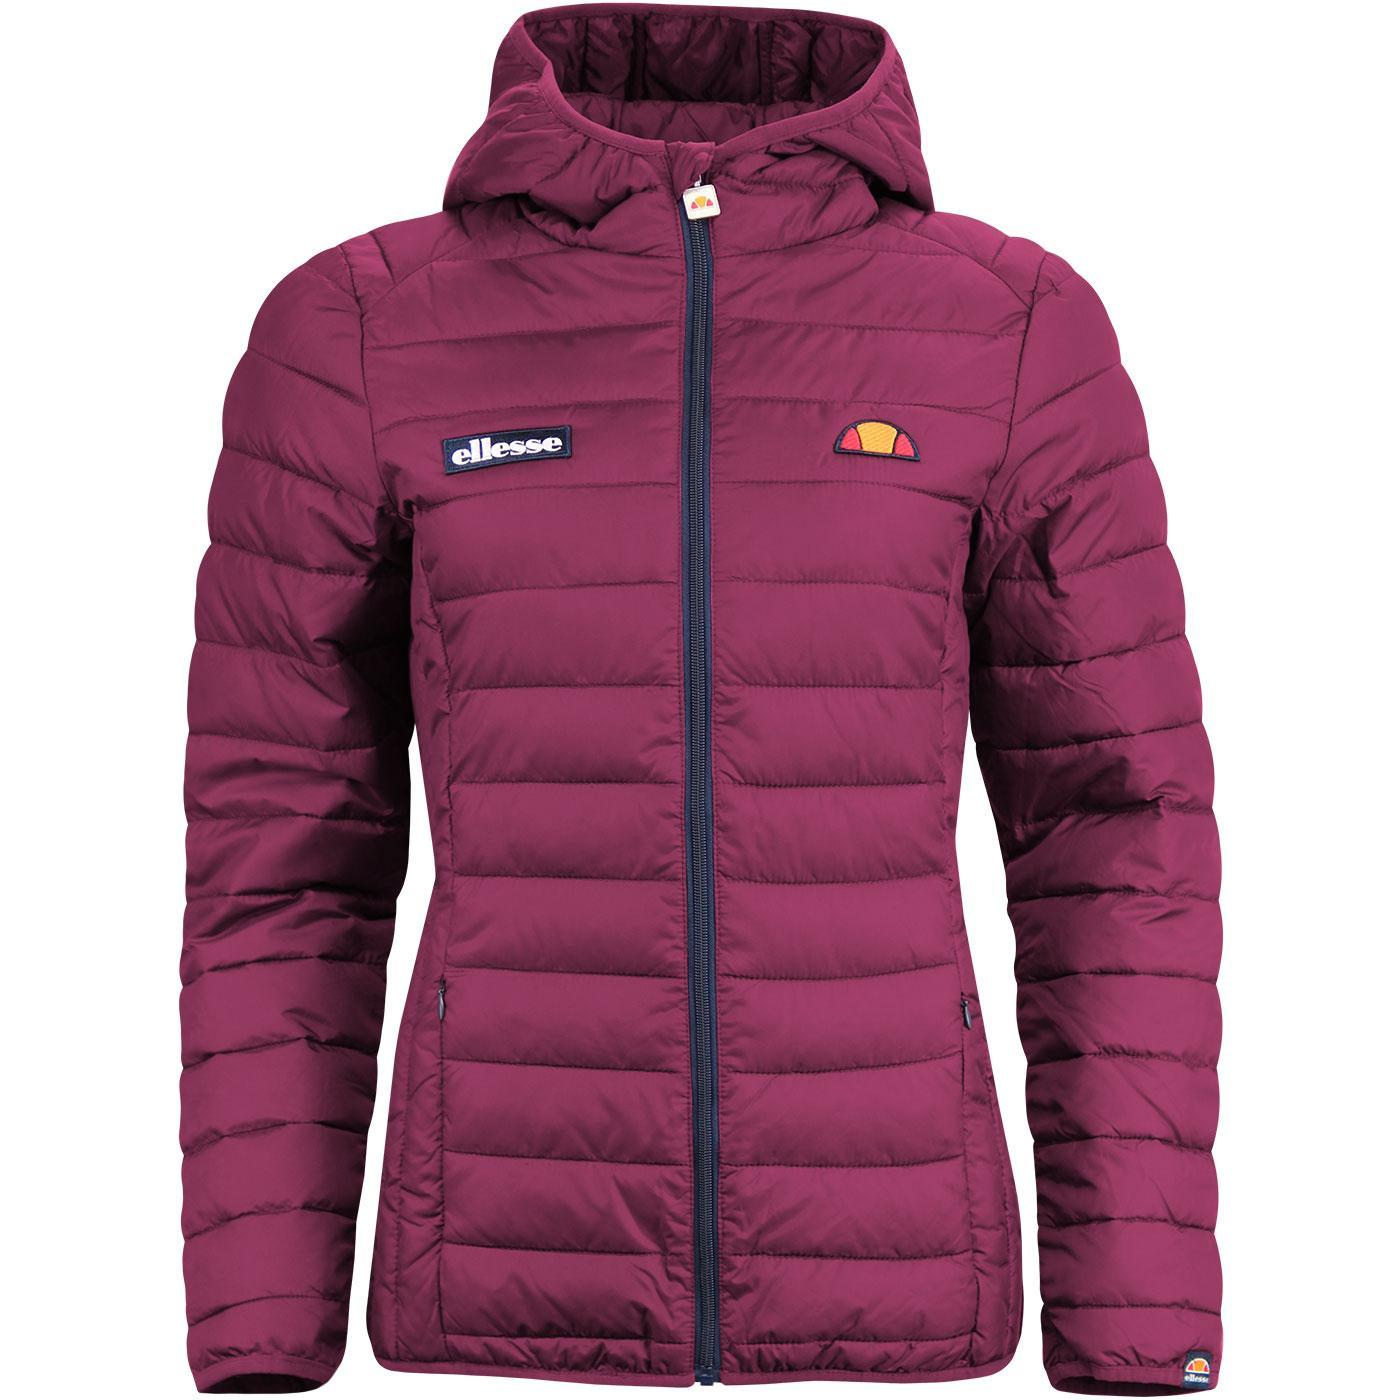 Lompard ELLESSE Retro 70s Padded Ski Jacket PURPLE